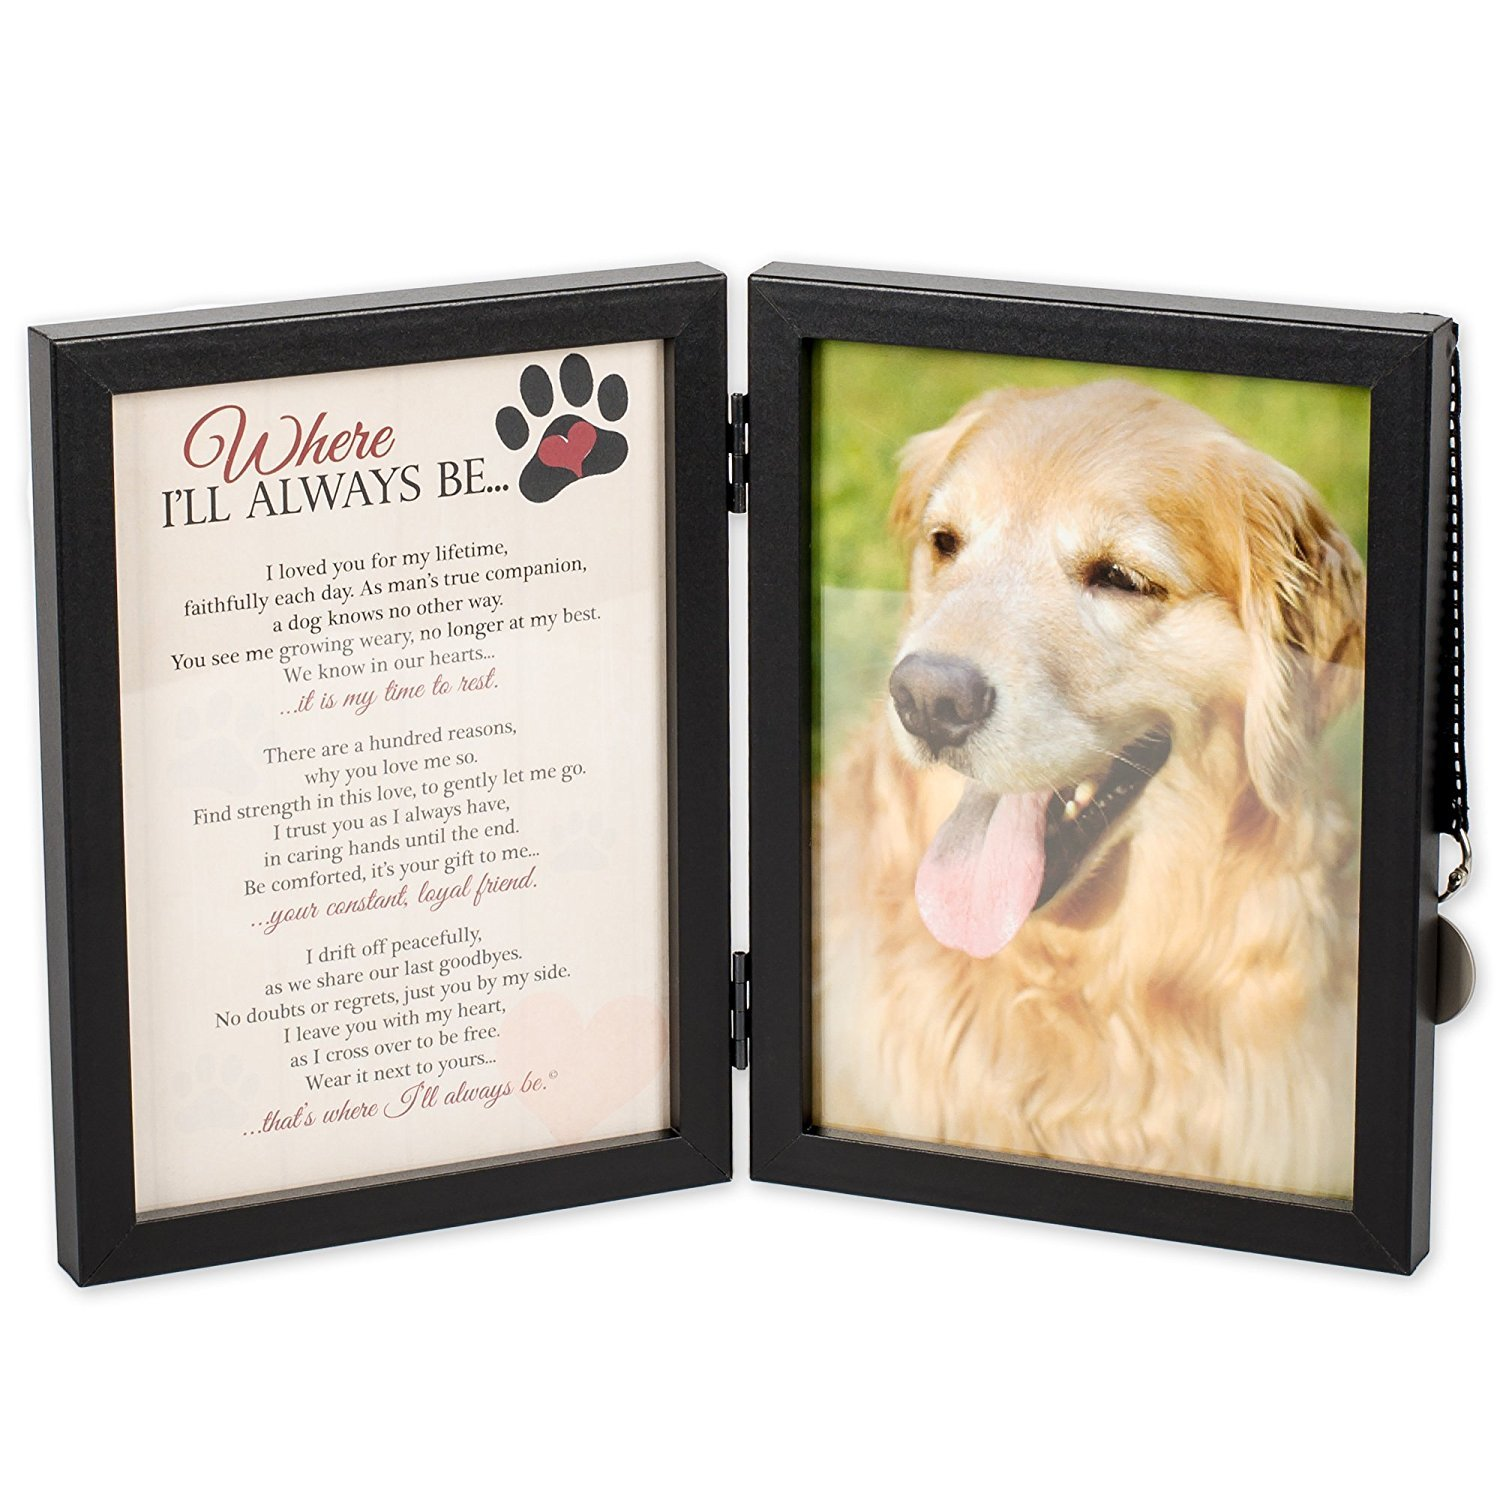 Where I'll Always Be Dog Memorial Photo Frame - Thoughtful Pet Memorial Gift (Frame with Pet Tag) by Pawprints Left by You Memorial Gifts